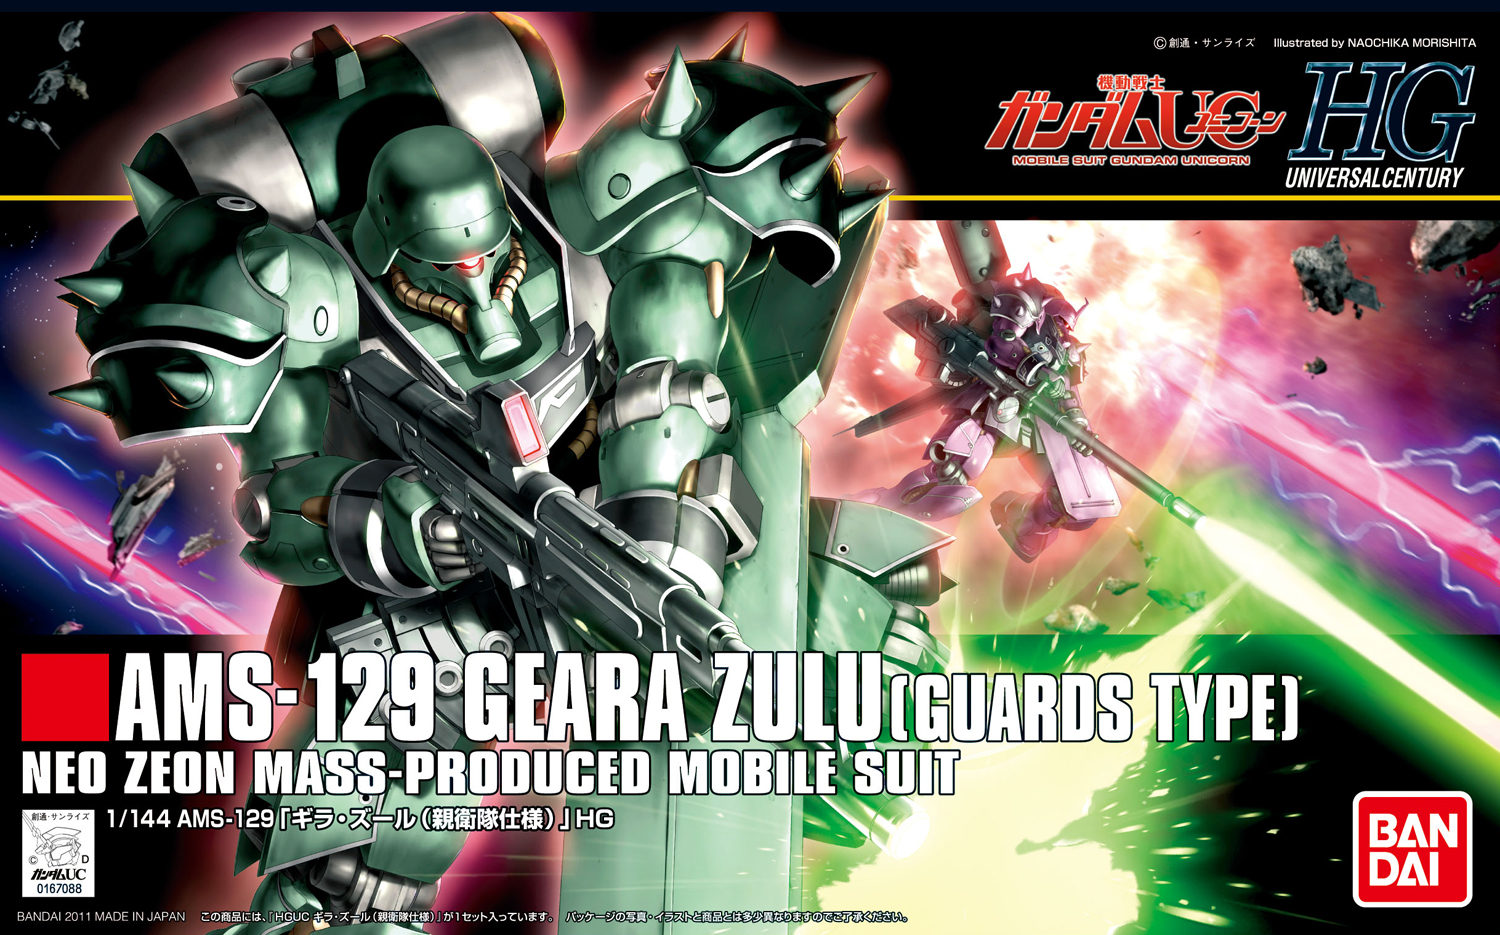 HGUC 1/144 AMS-129 ギラ・ズール(親衛隊仕様) [Geara Zulu (Guards Type)]